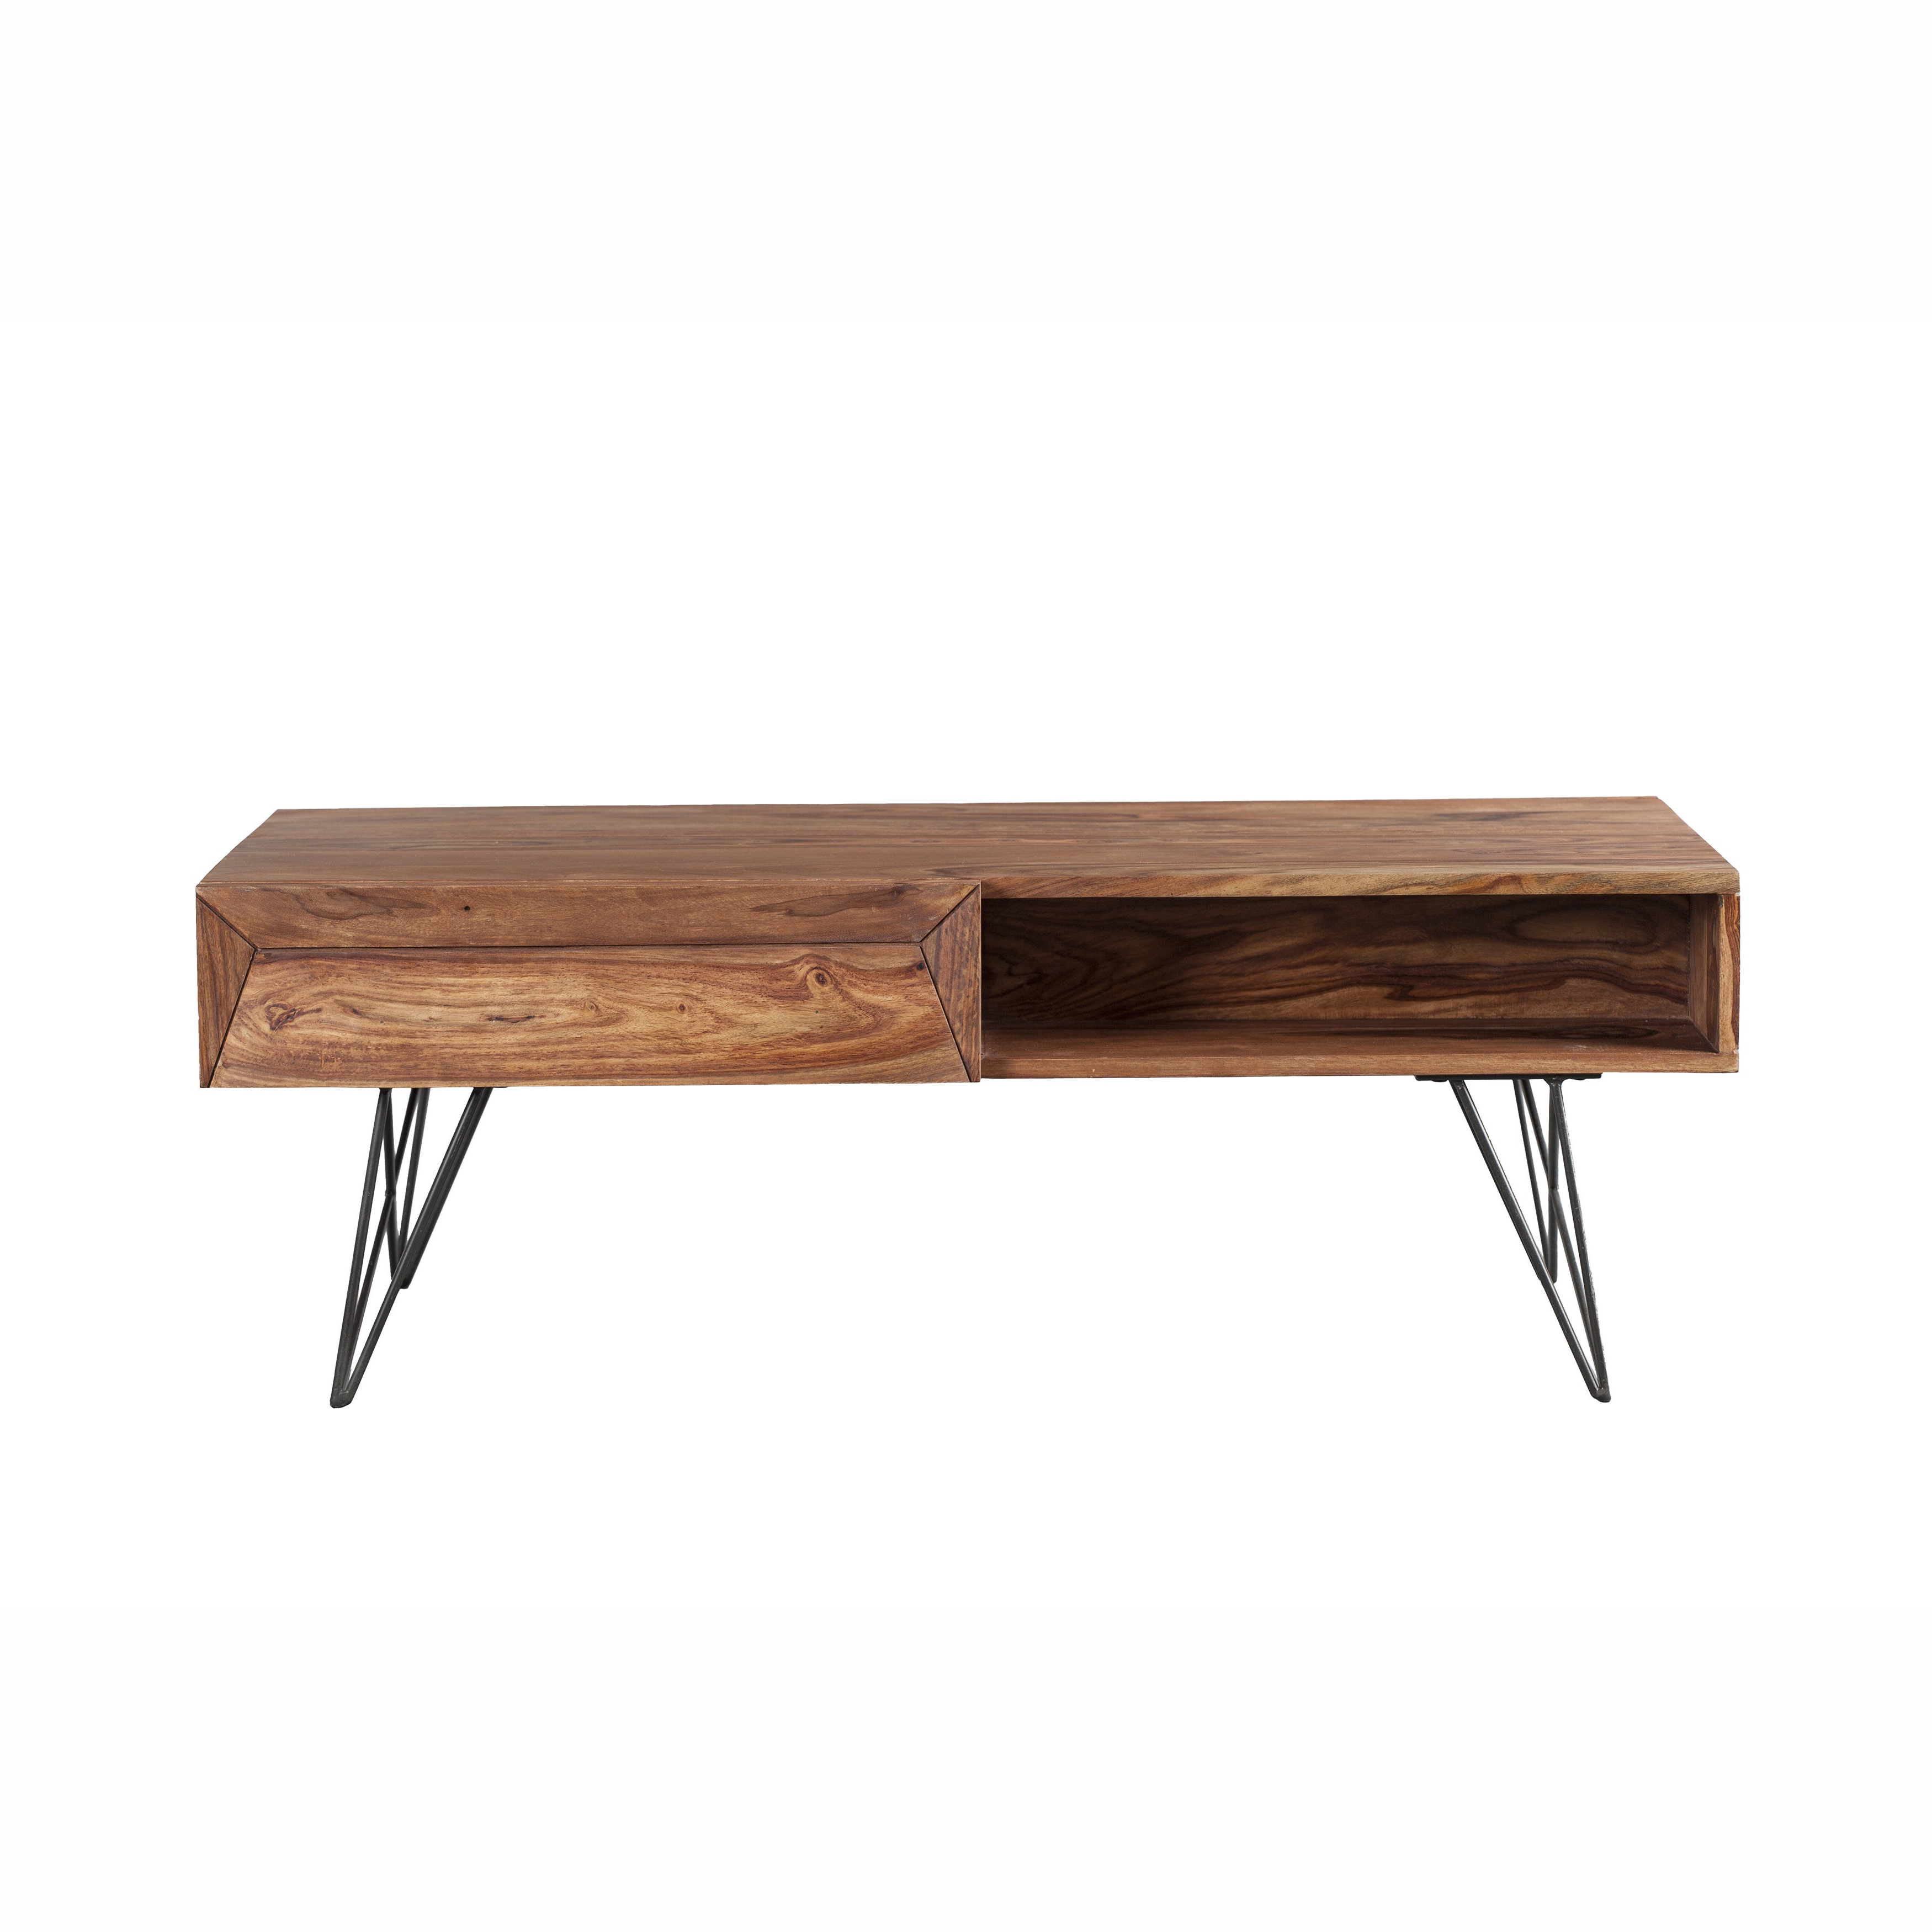 Well Liked Idris Dark Sheesham Solid Wood Coffee Tables Throughout Mandara Handcrafted Solid Sheesham Wood Coffee Table – 45x24x (View 13 of 20)